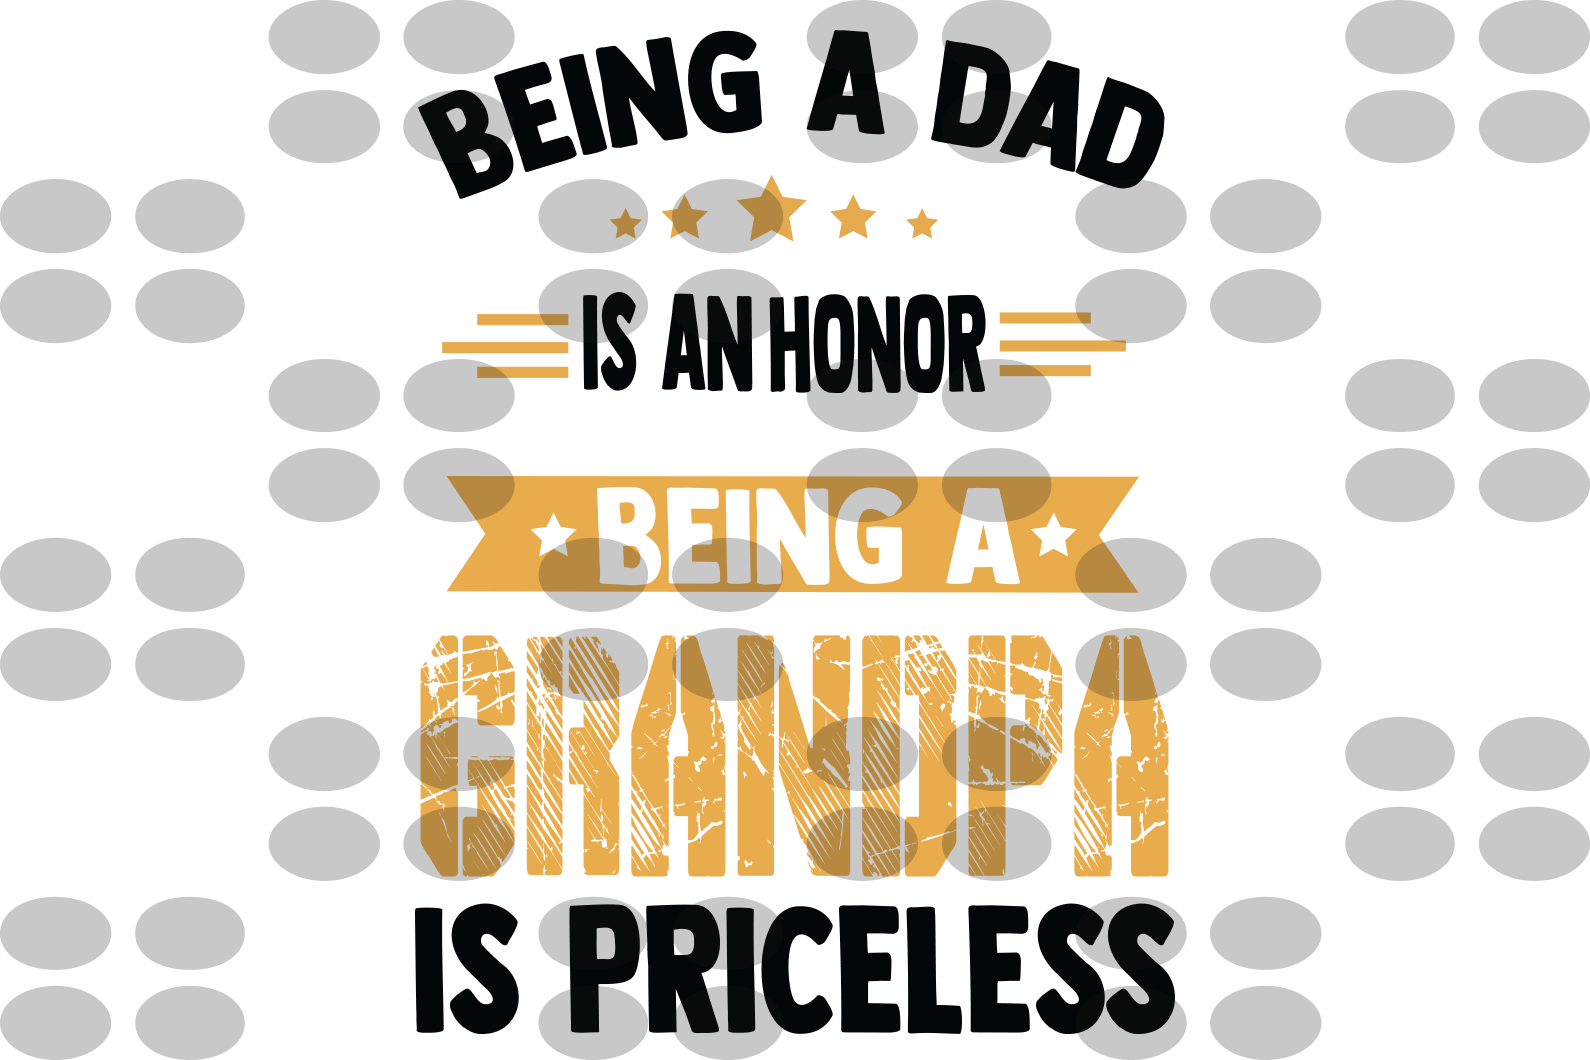 Being A dad Is An Honor Being A grandpa svg, father svg, father gifts svg, gifts for father, fatherdy svg, father birthday gift, father shirt, fathers day svg, papa svg, papa gifts svg, gift for papa